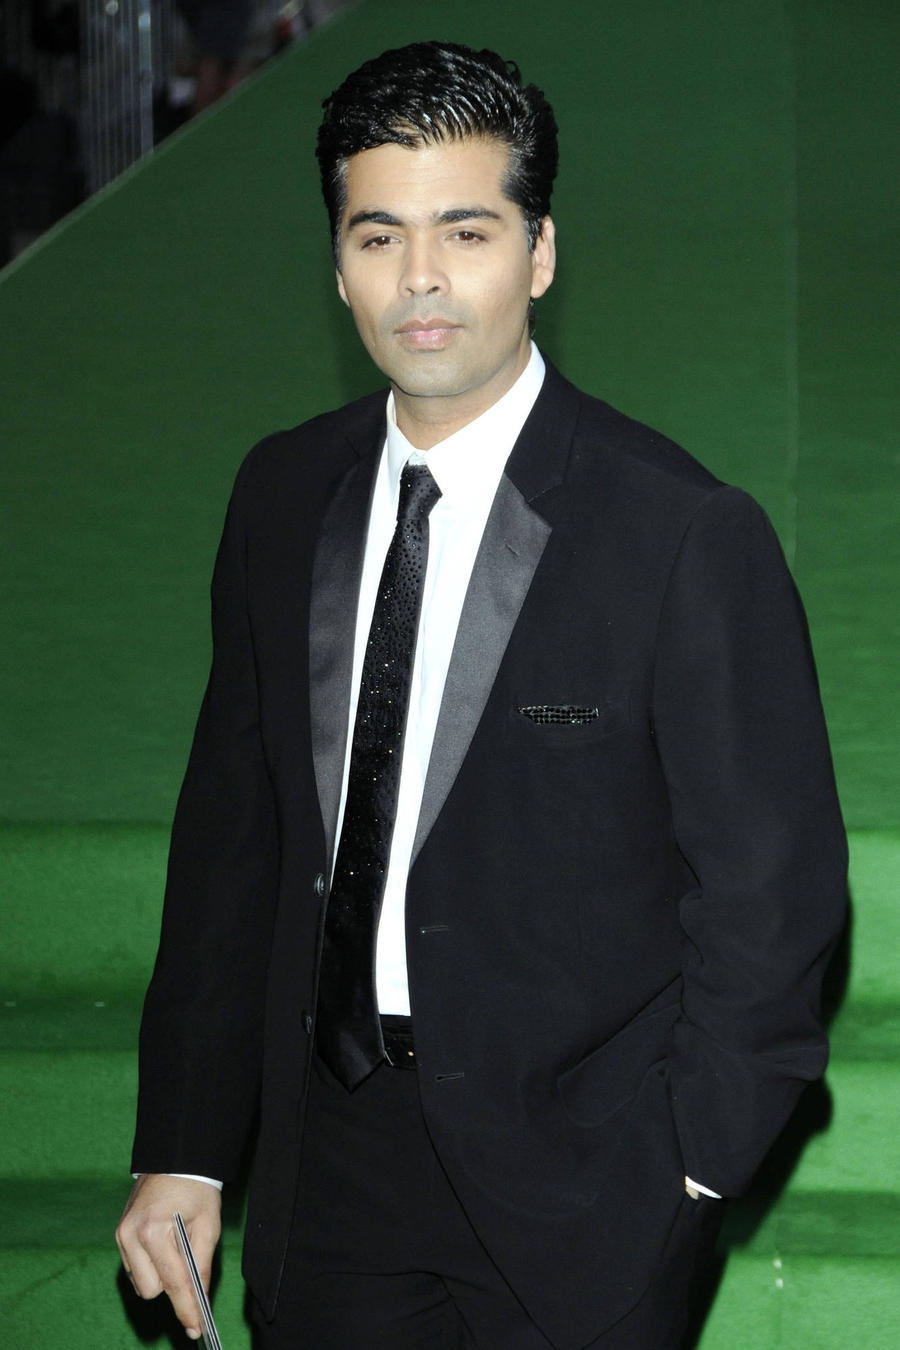 Bollywood Director Karan Johar Bans Pakistani Actors After Threats